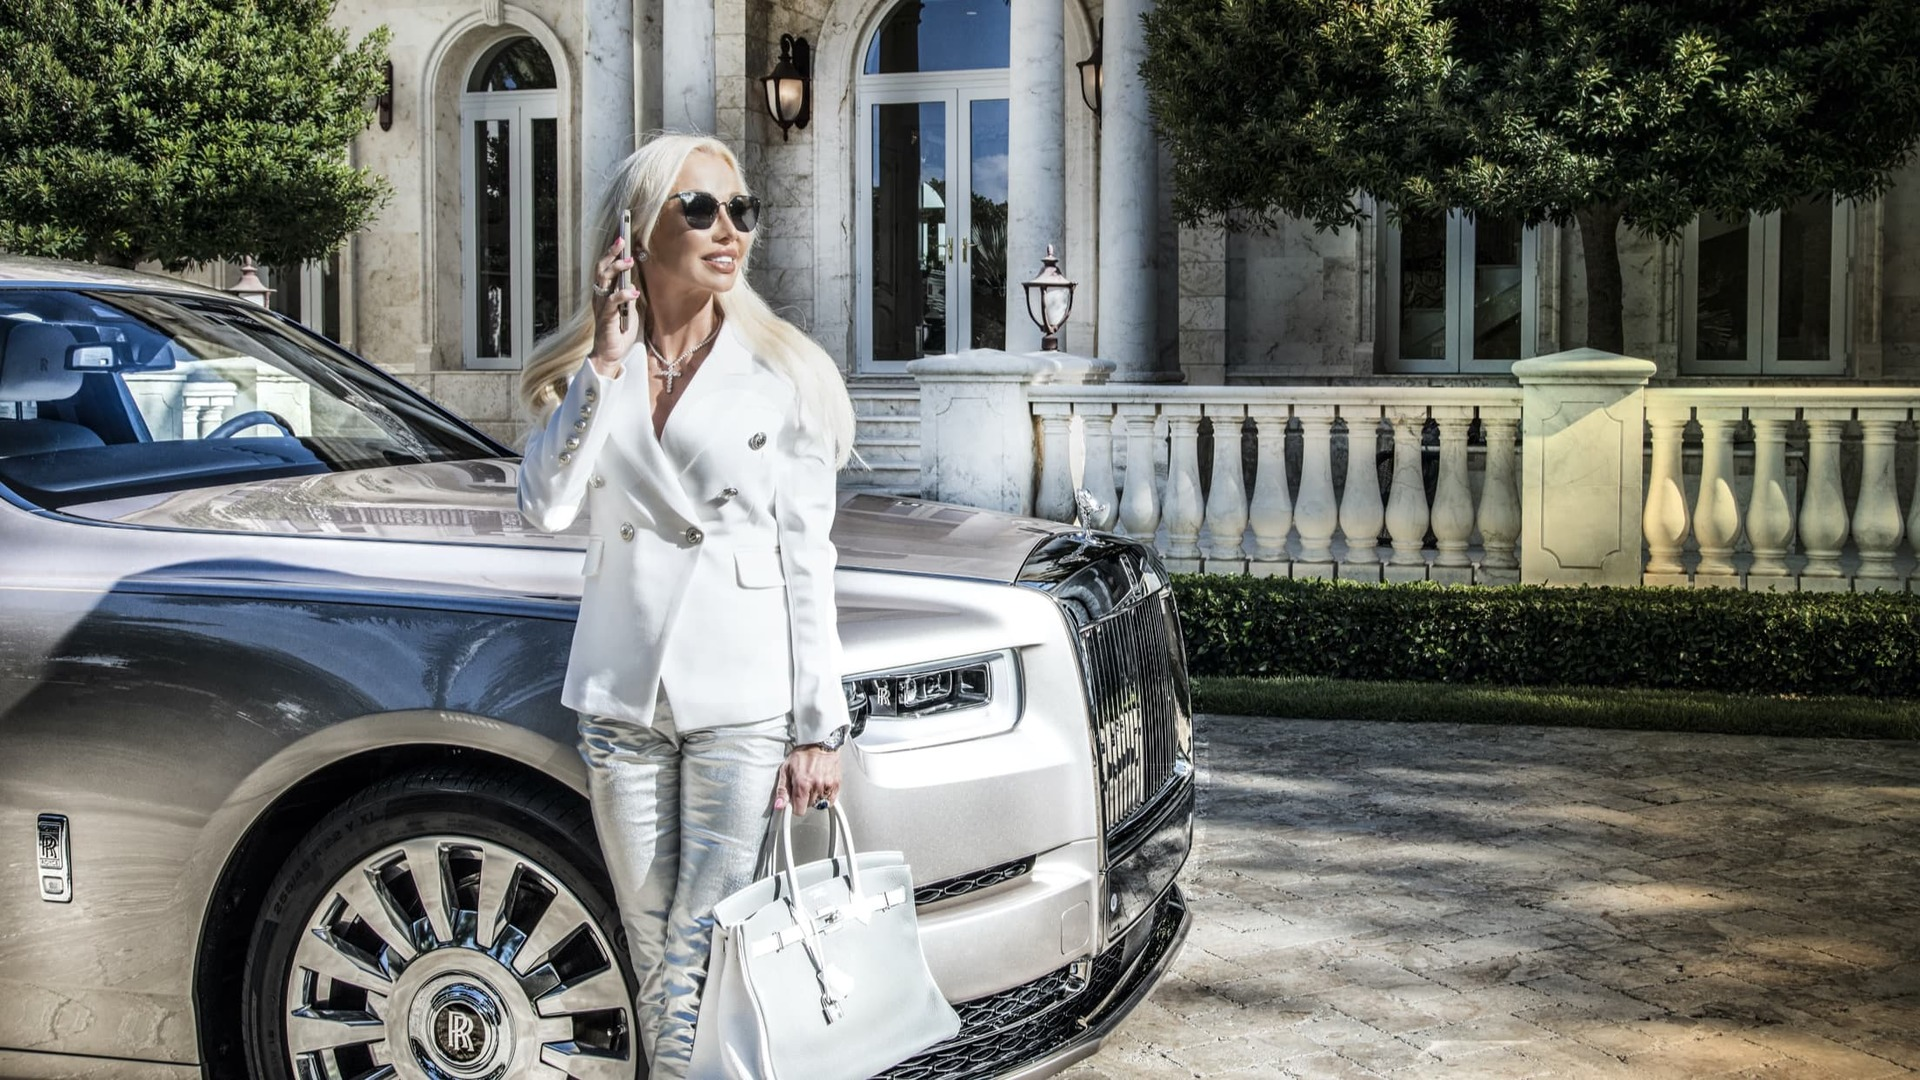 A shot of Sandra Fiorenza holding a white bag leaning against the front-right hand side of her silver Rolls-Royce Phantom